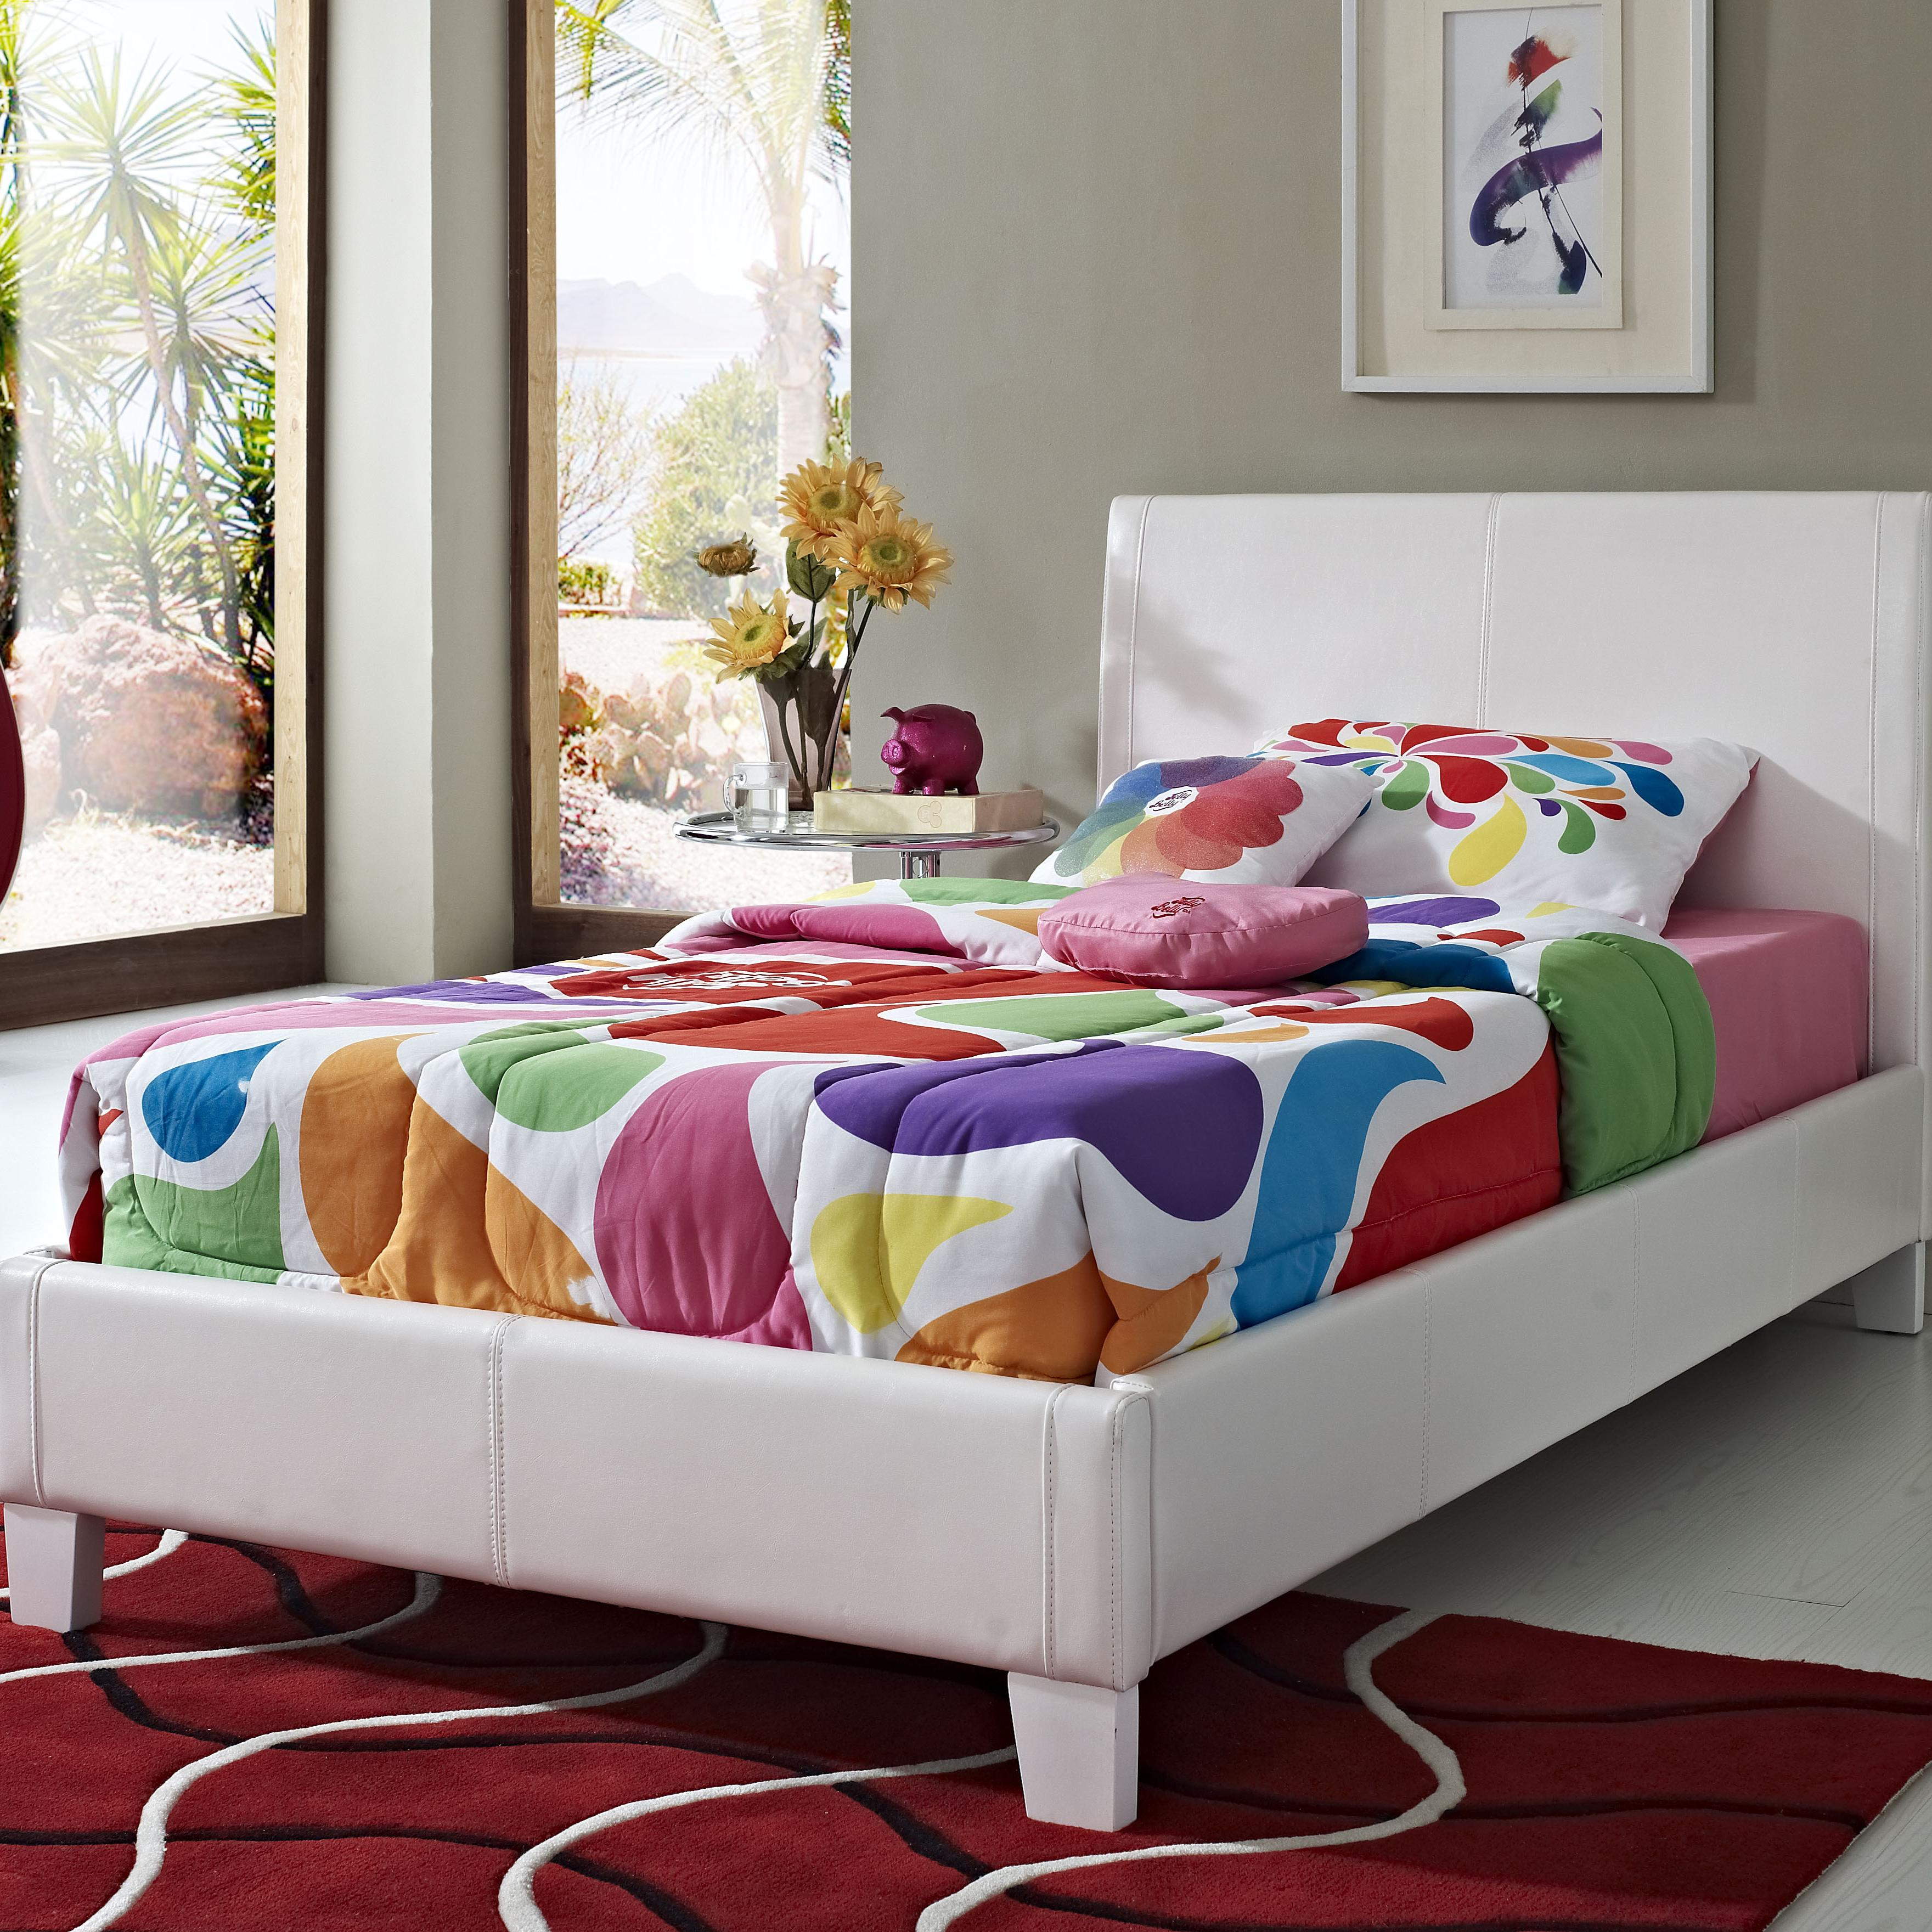 Standard Furniture Fantasia Twin Upholstered Bed - Item Number: 60756+76